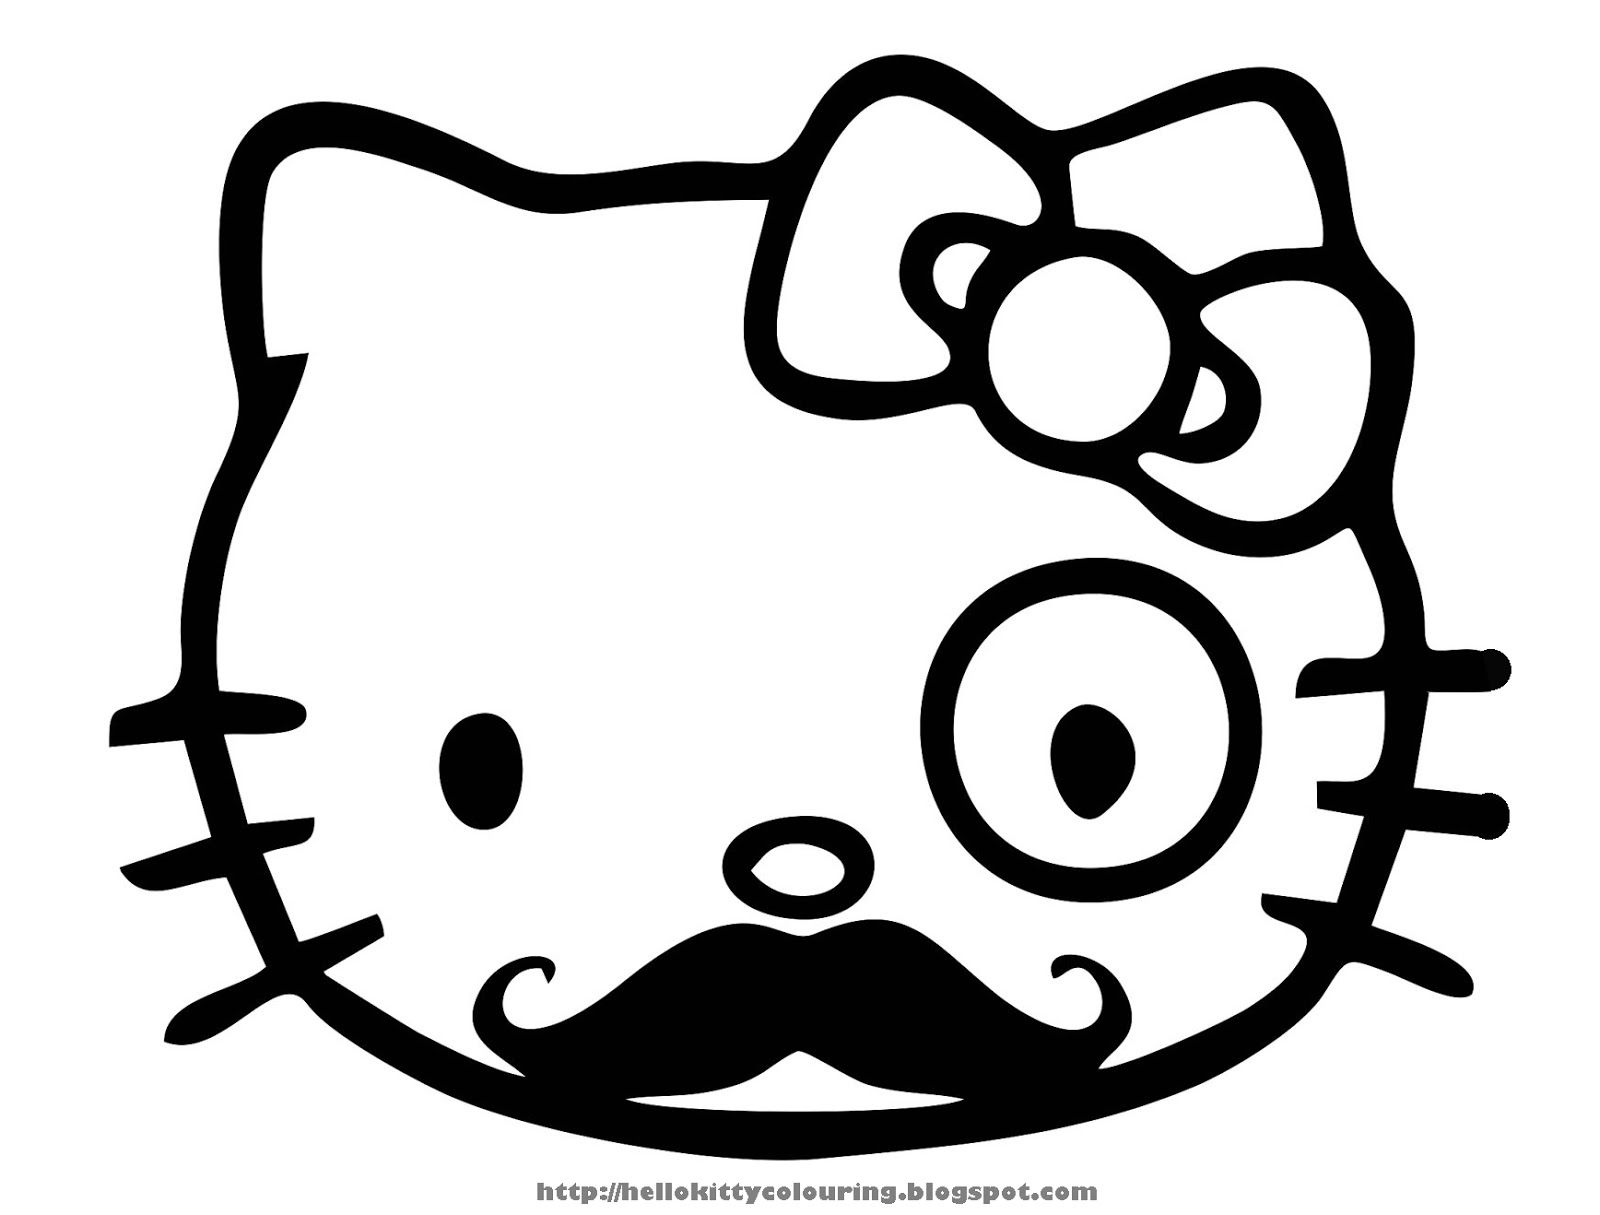 Free Printable Hello Kitty Coloring Pages Party Invitations Activity Sheets And Paper Crafts Hello Kitty Coloring Hello Kitty Colouring Pages Kitty Coloring